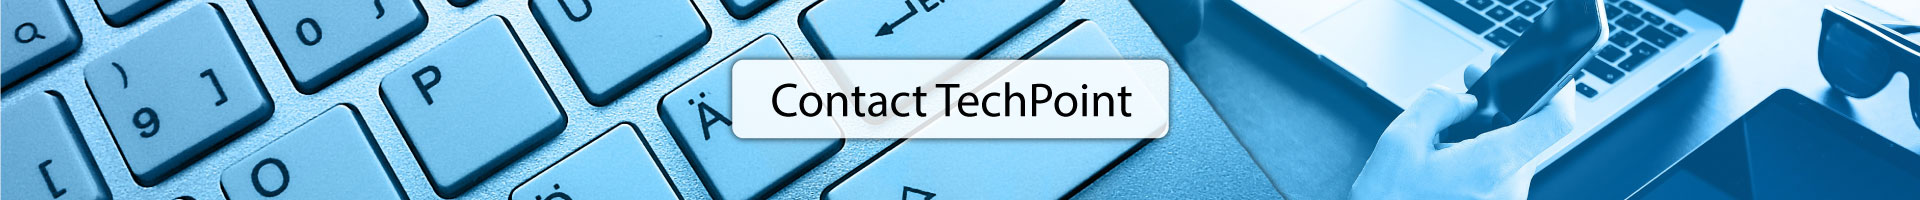 Contact TechPoint